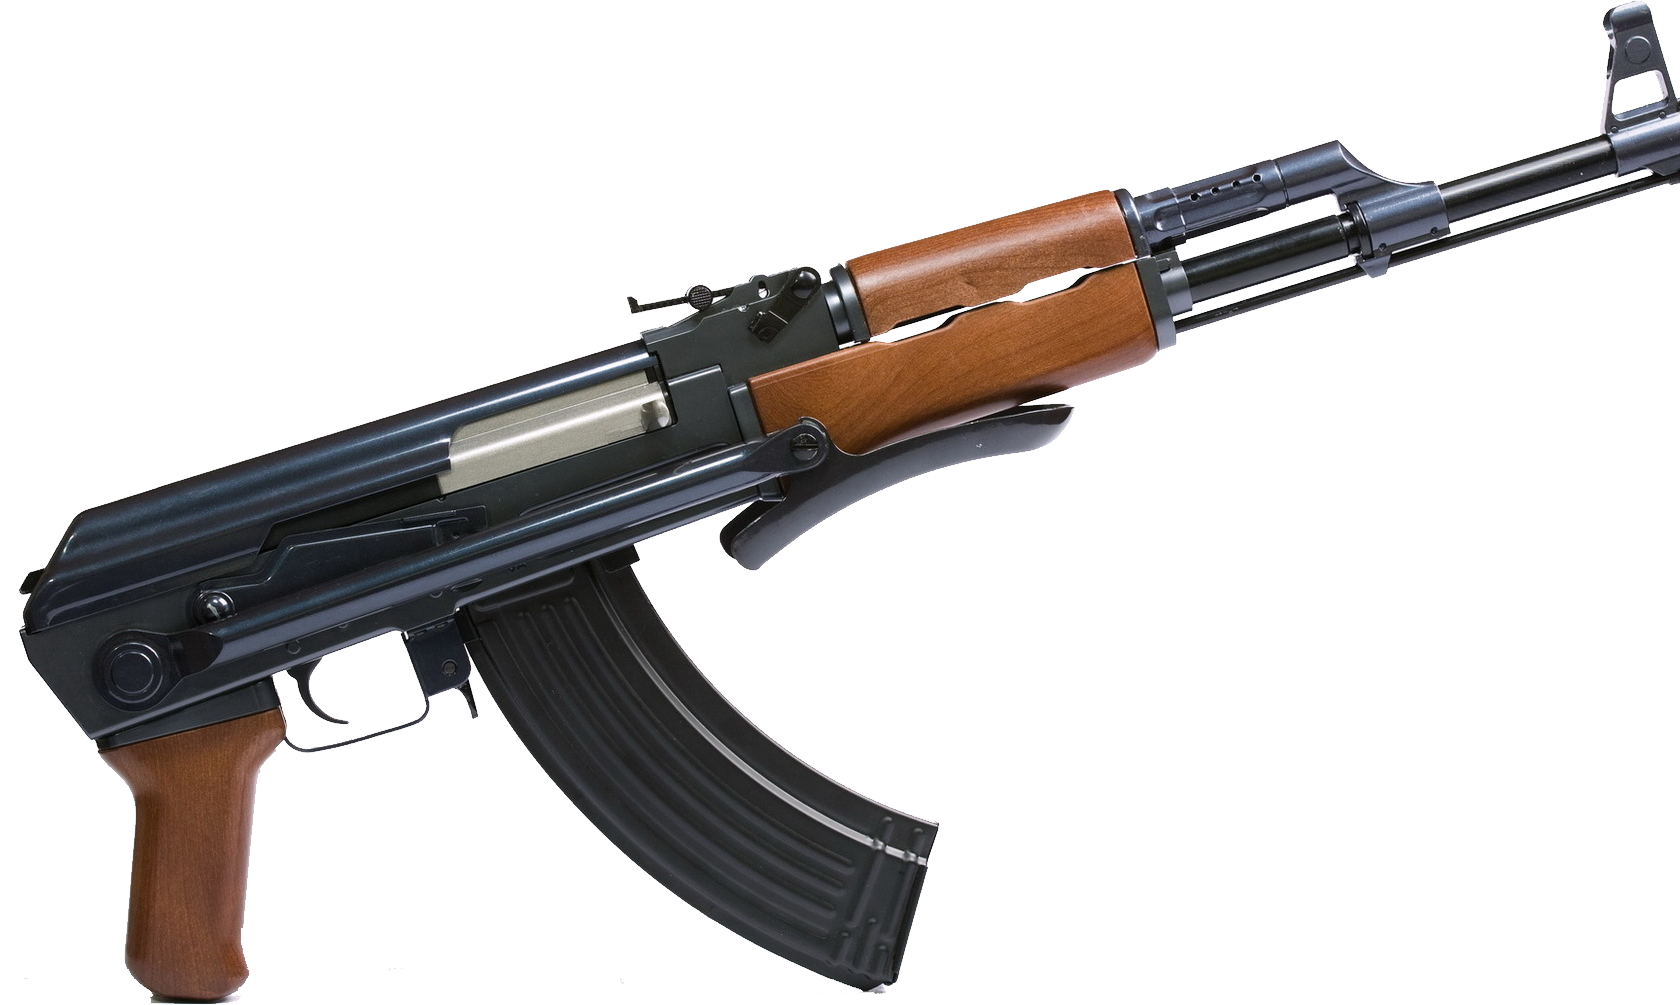 Download AK 74 PNG Image for Free.